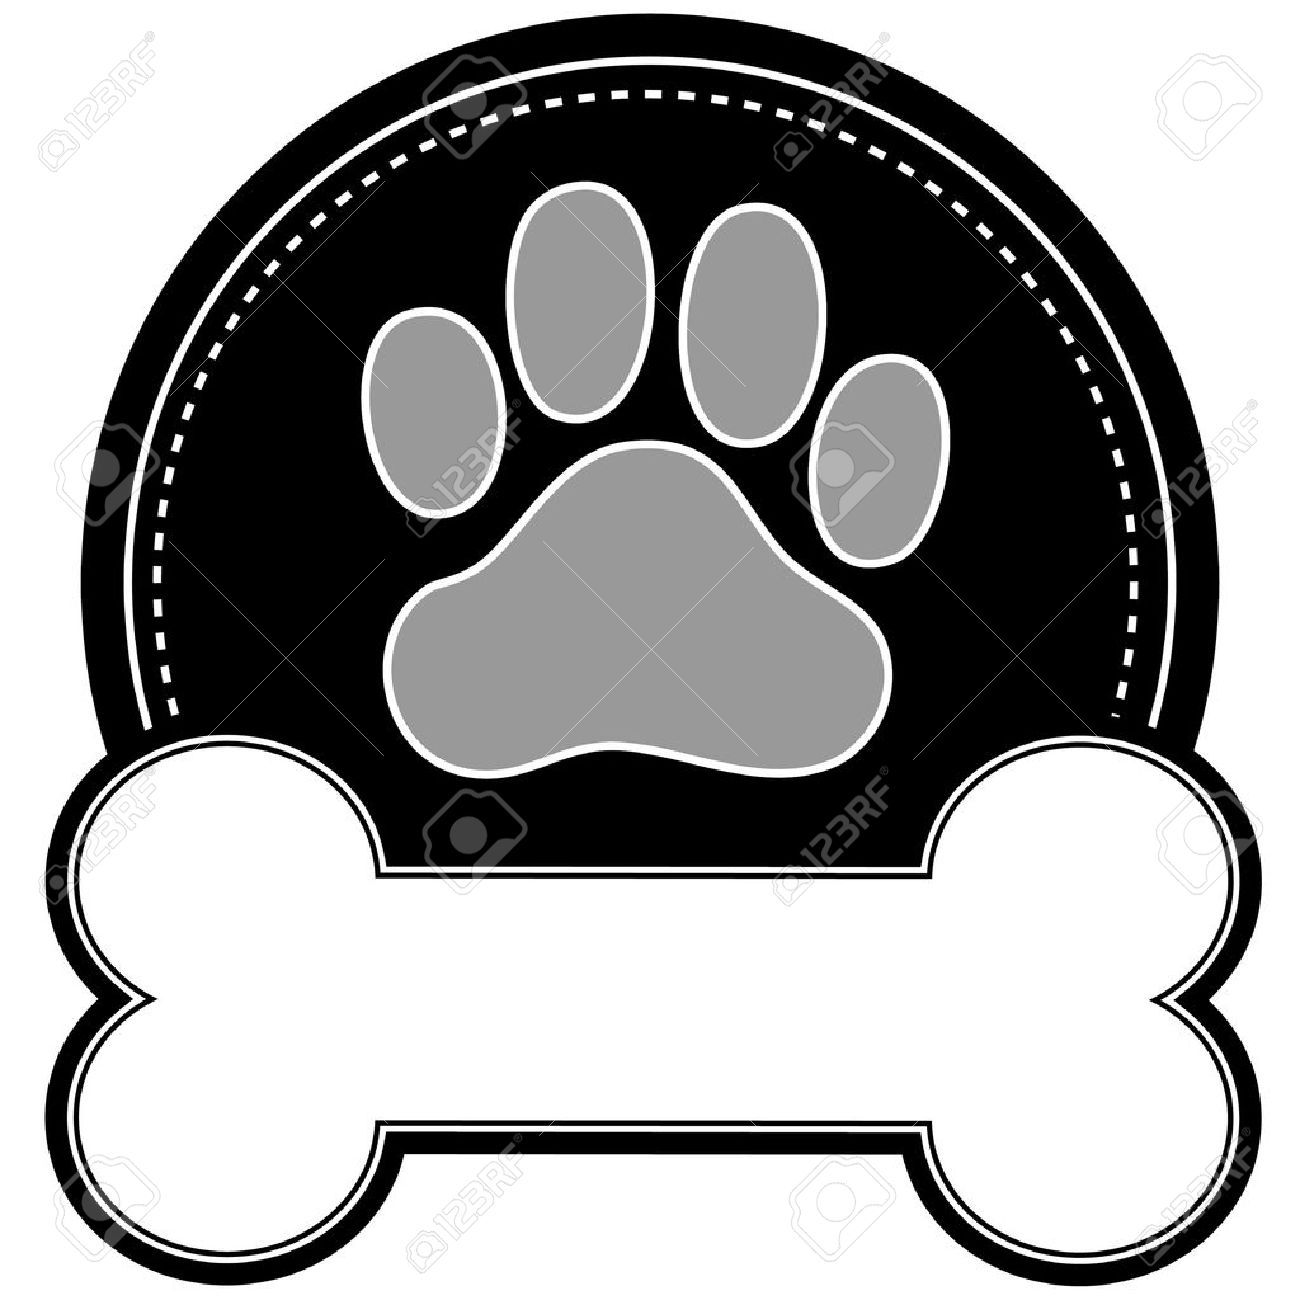 Image result for flower pattern for sewing embroidery printables | Paw  print clip art, Dog paw print, Dog paws